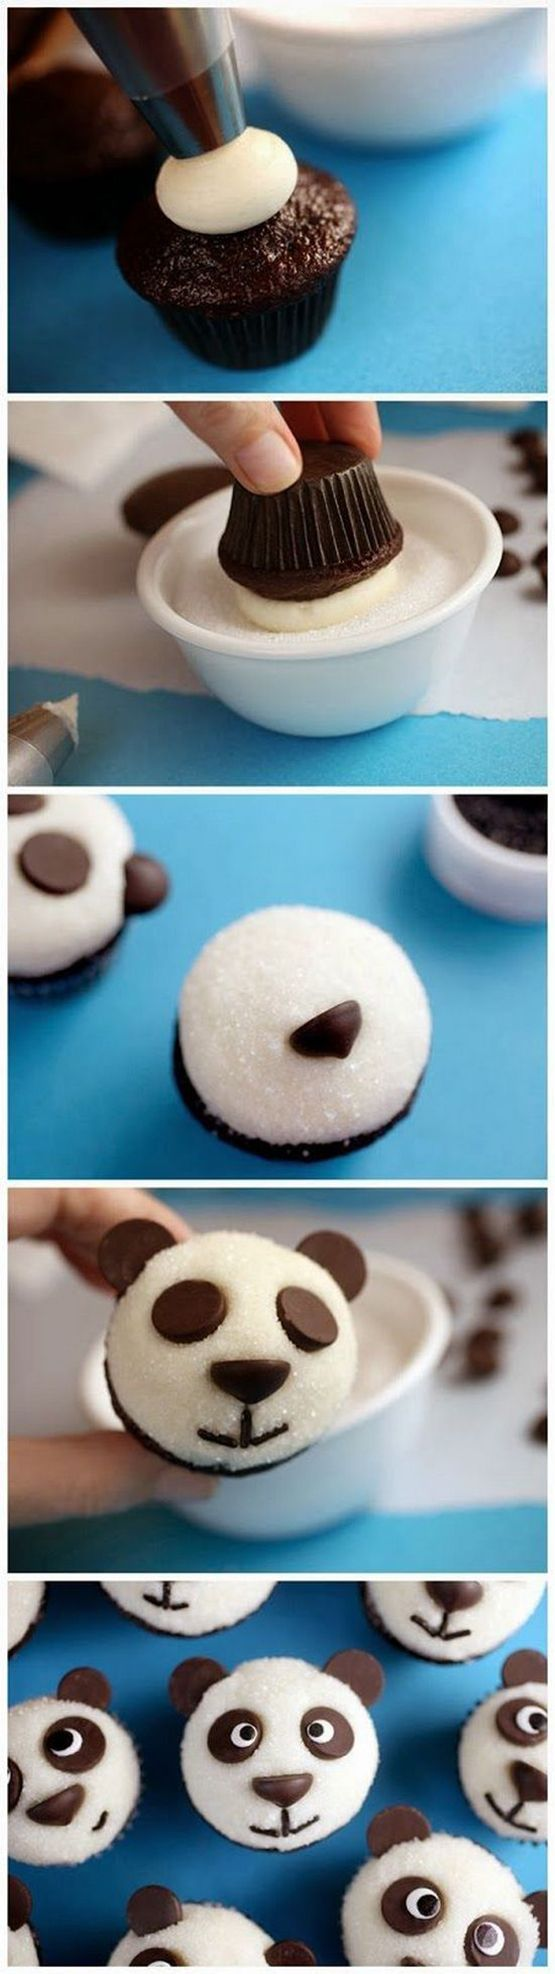 I'll make these panda cupcakes for next time I come to your house ;)